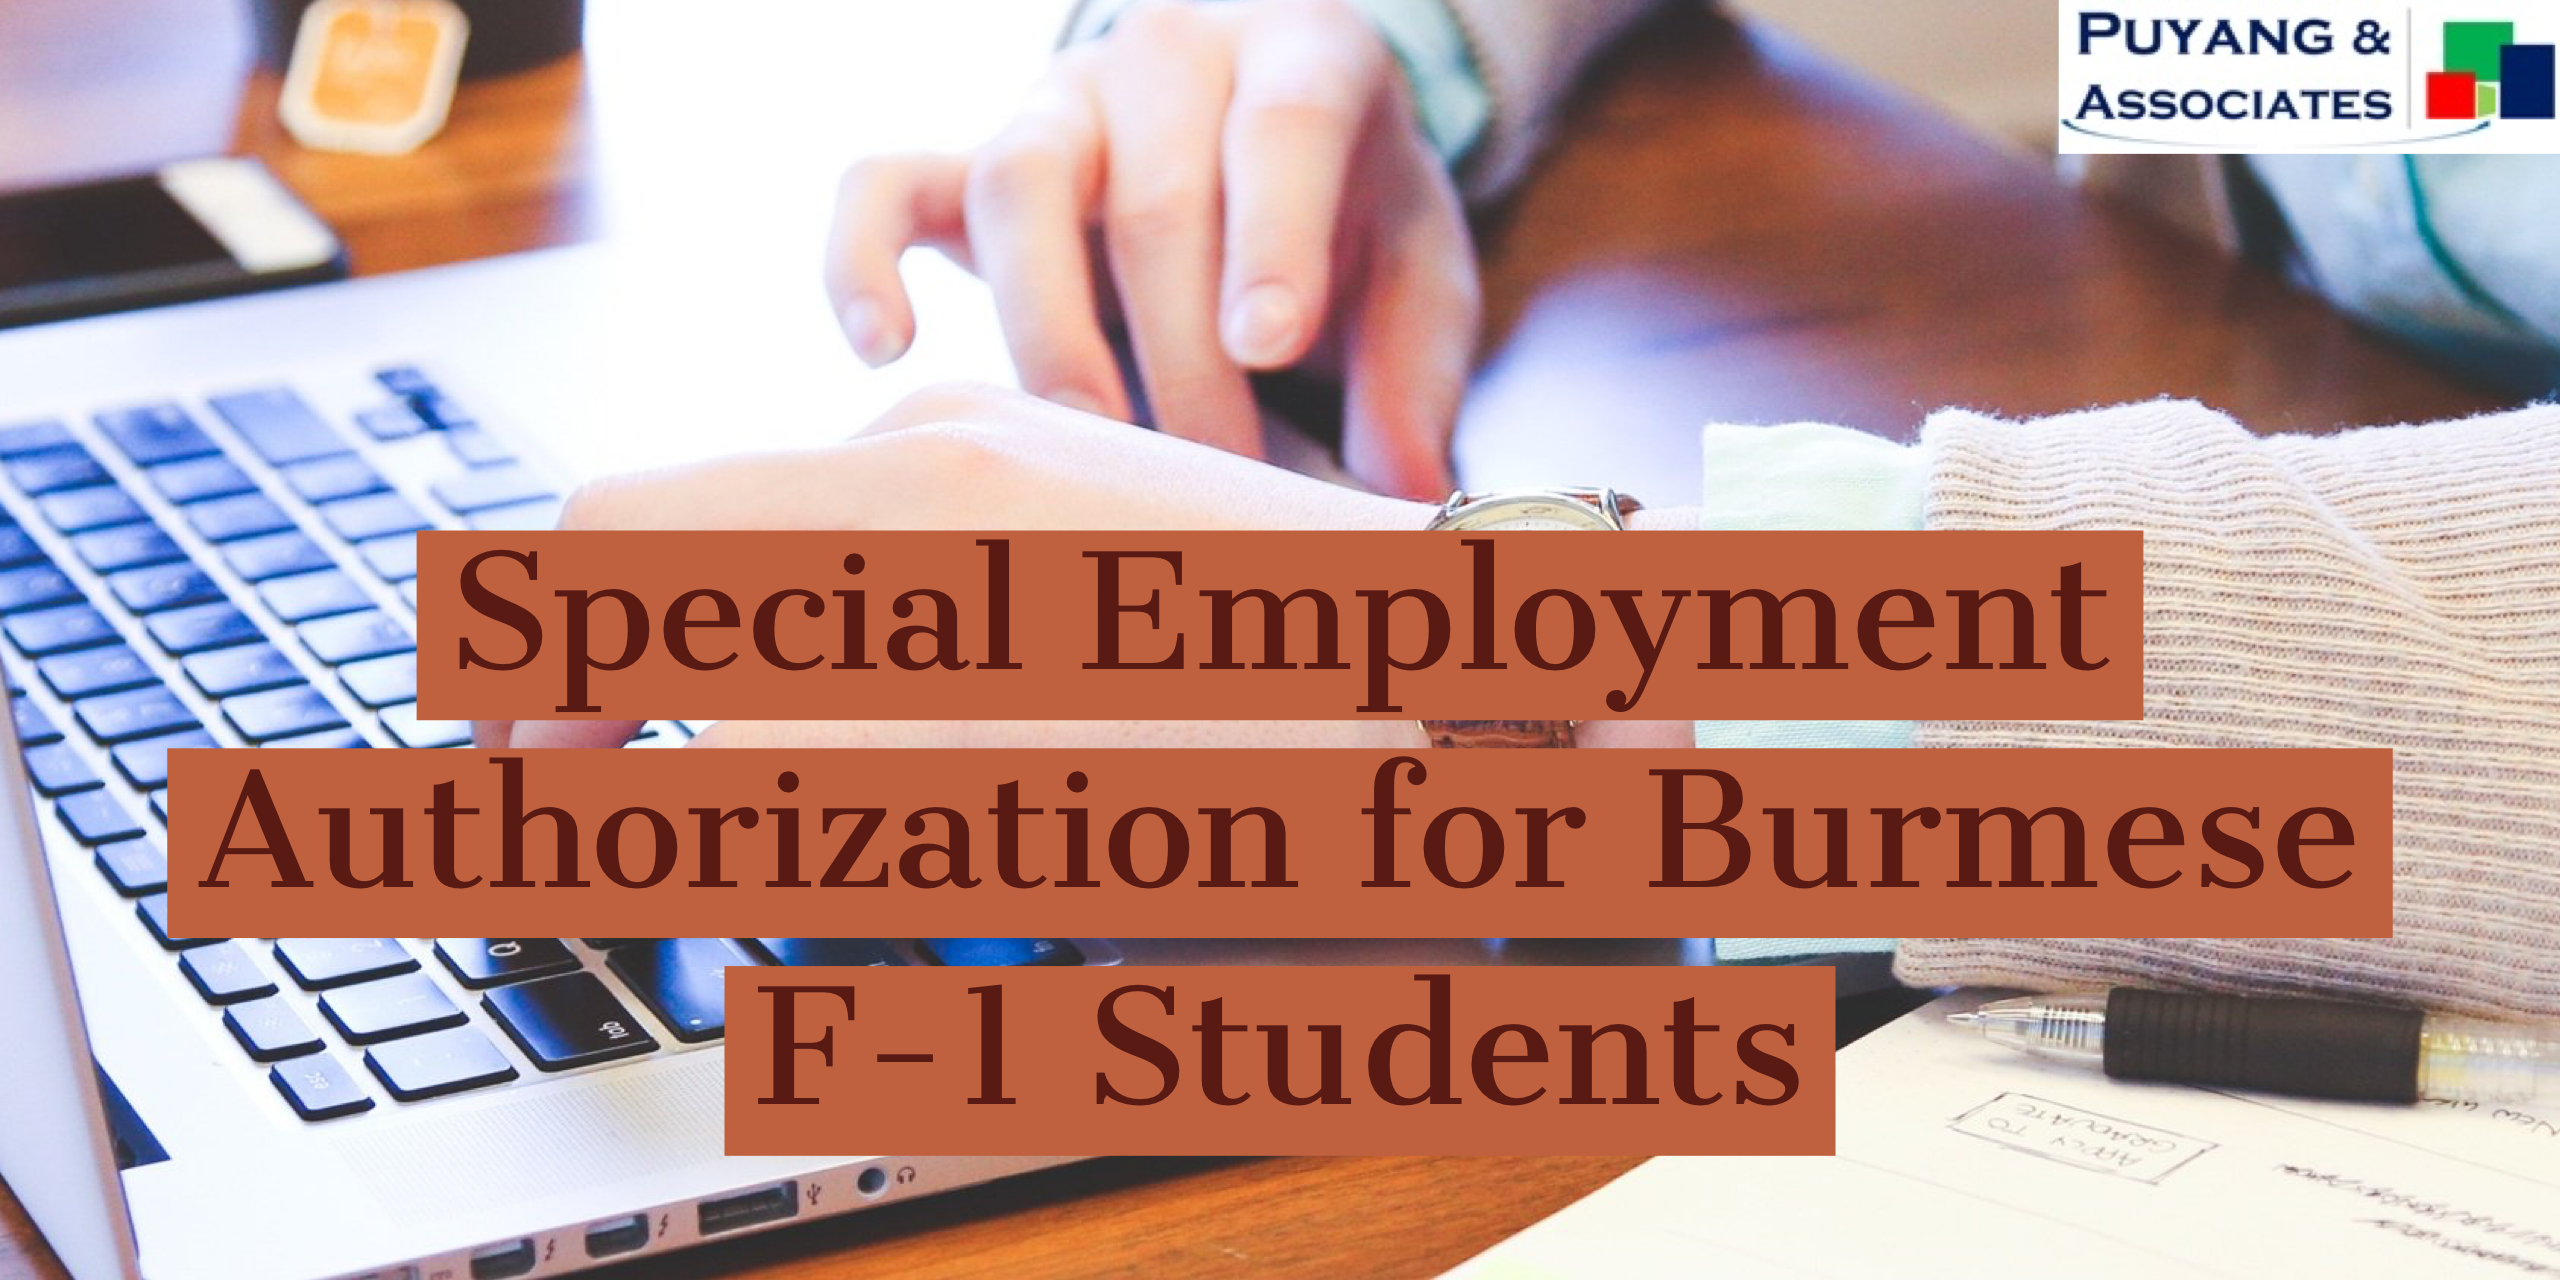 Special Employment Authorization for Burmese F-1 Students